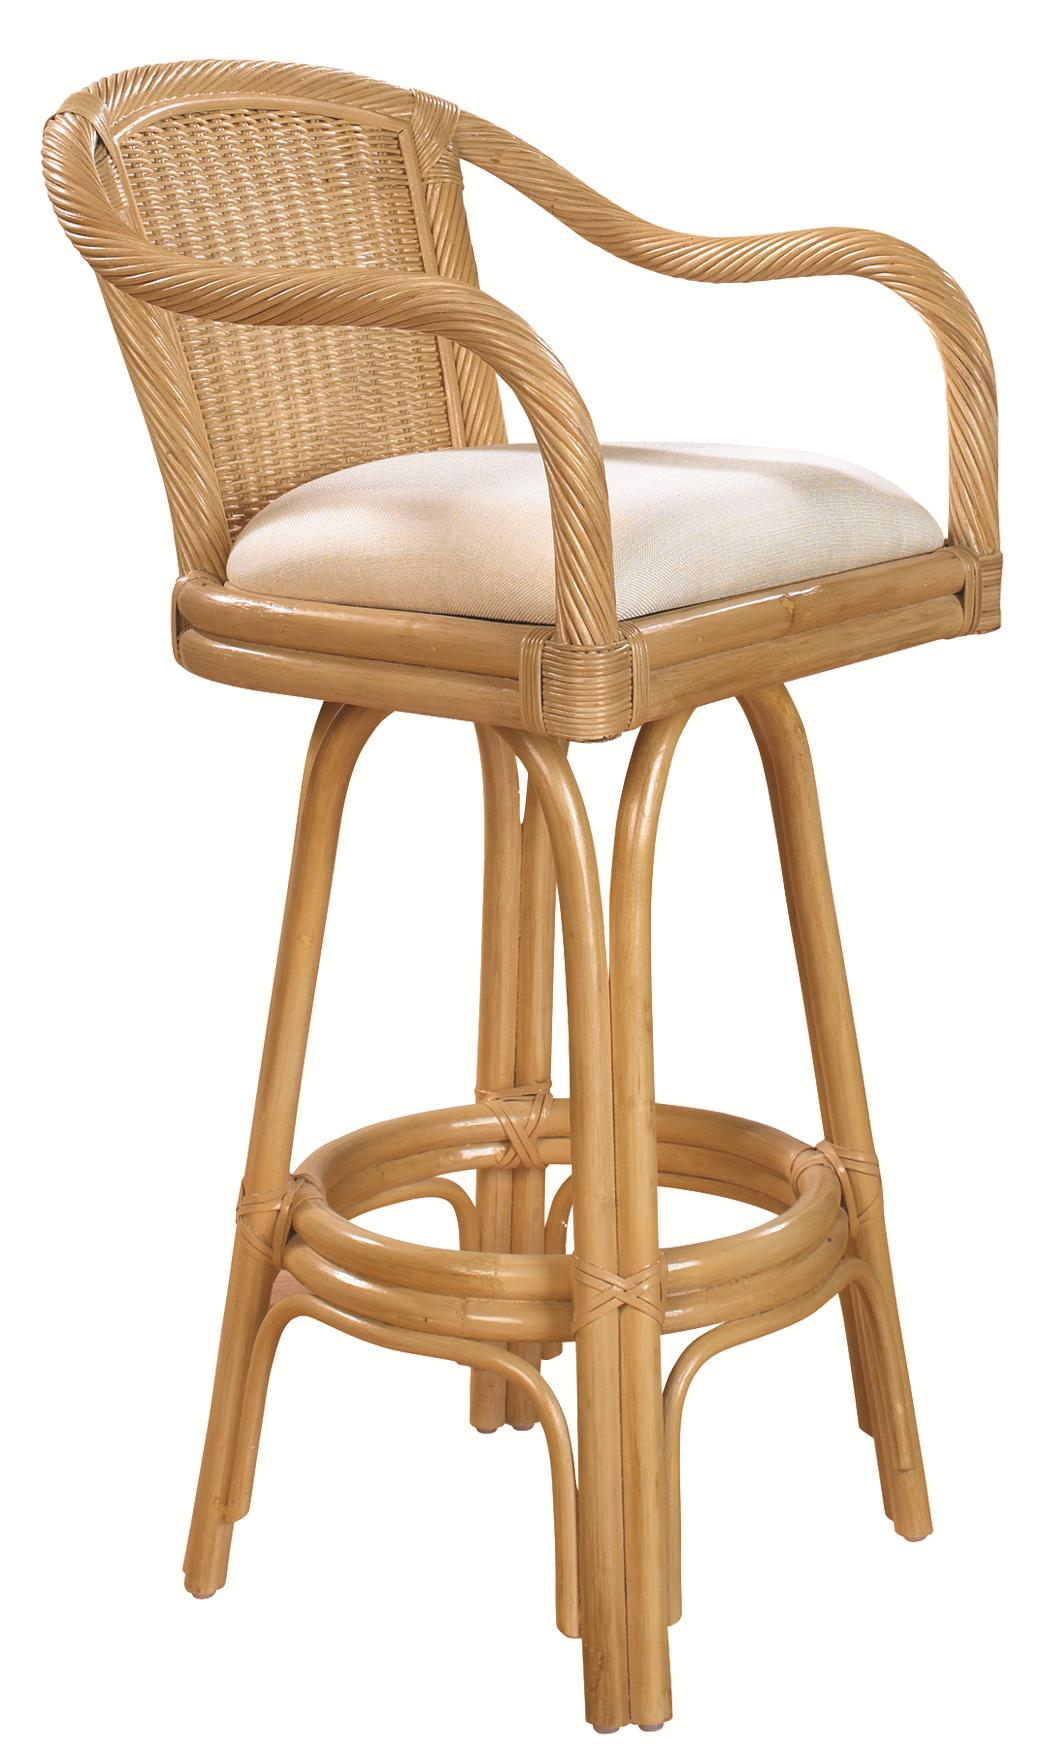 Pelican Reef Bar Stools Pr 24 Counter Stool With Uphostered Seat Jacksonville Furniture Mart